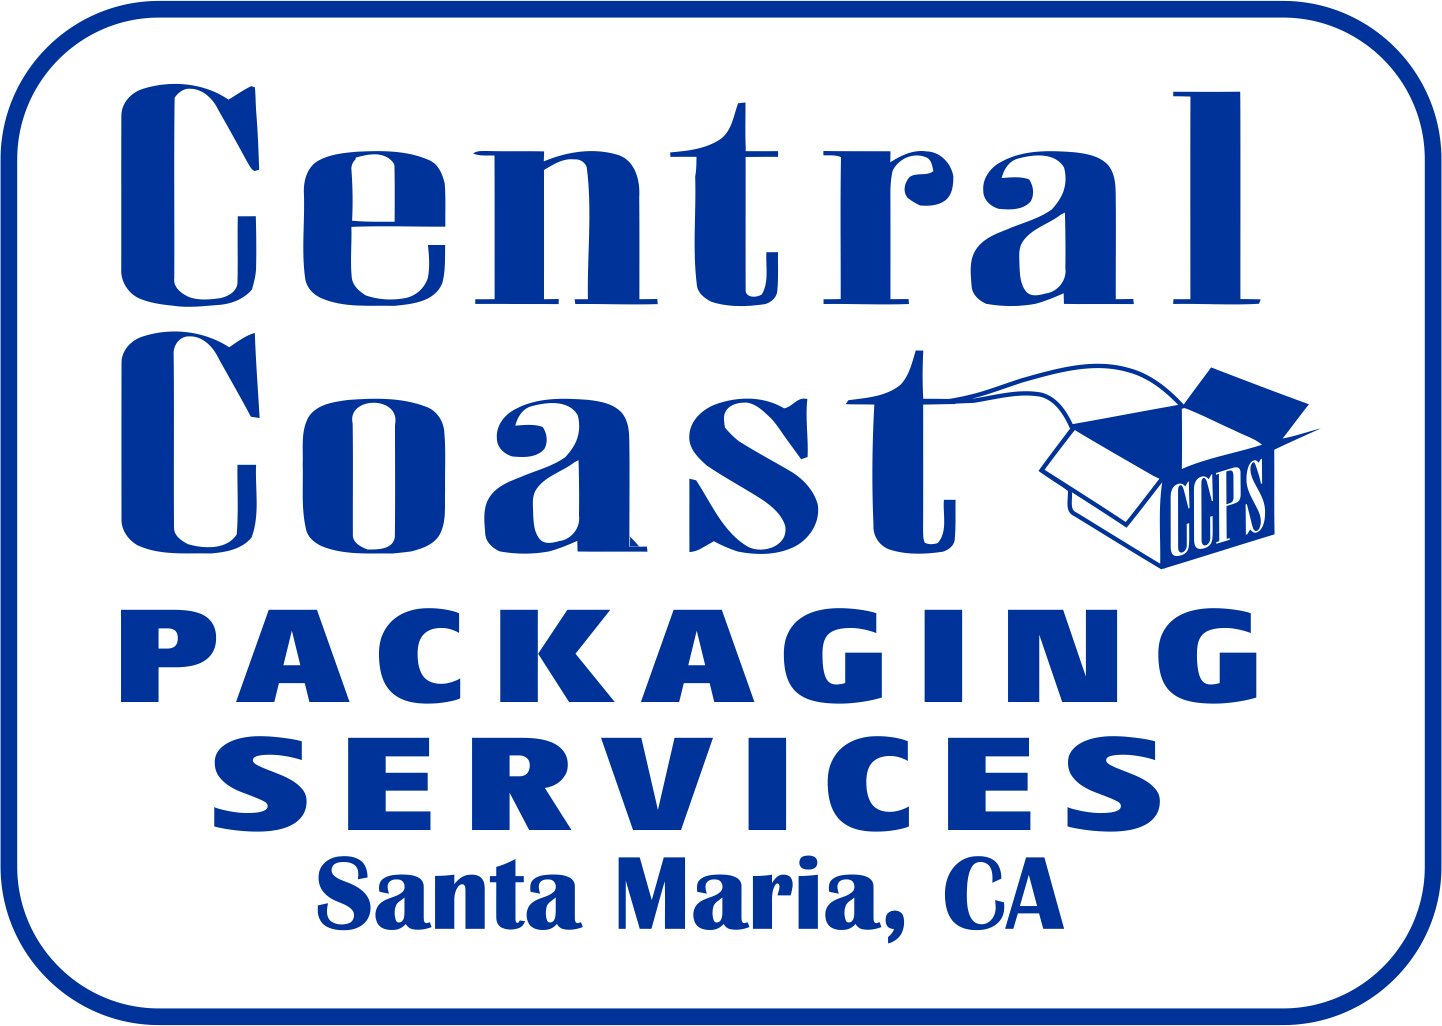 Central Coast Packaging Services